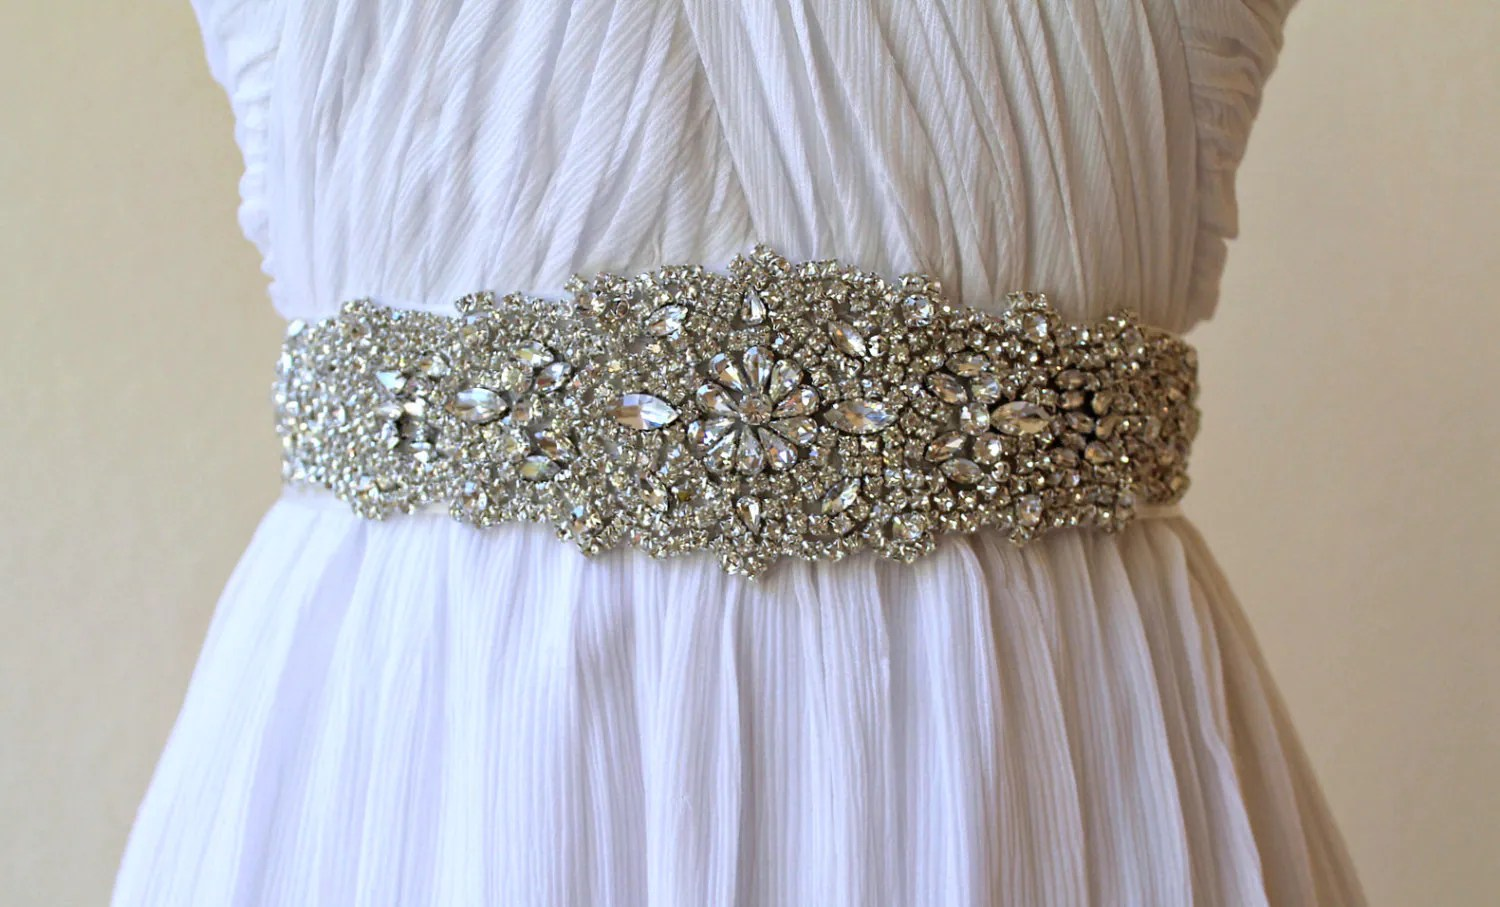 Bridal Beaded Luxury Crystal Applique Ribbon Sash. Wedding